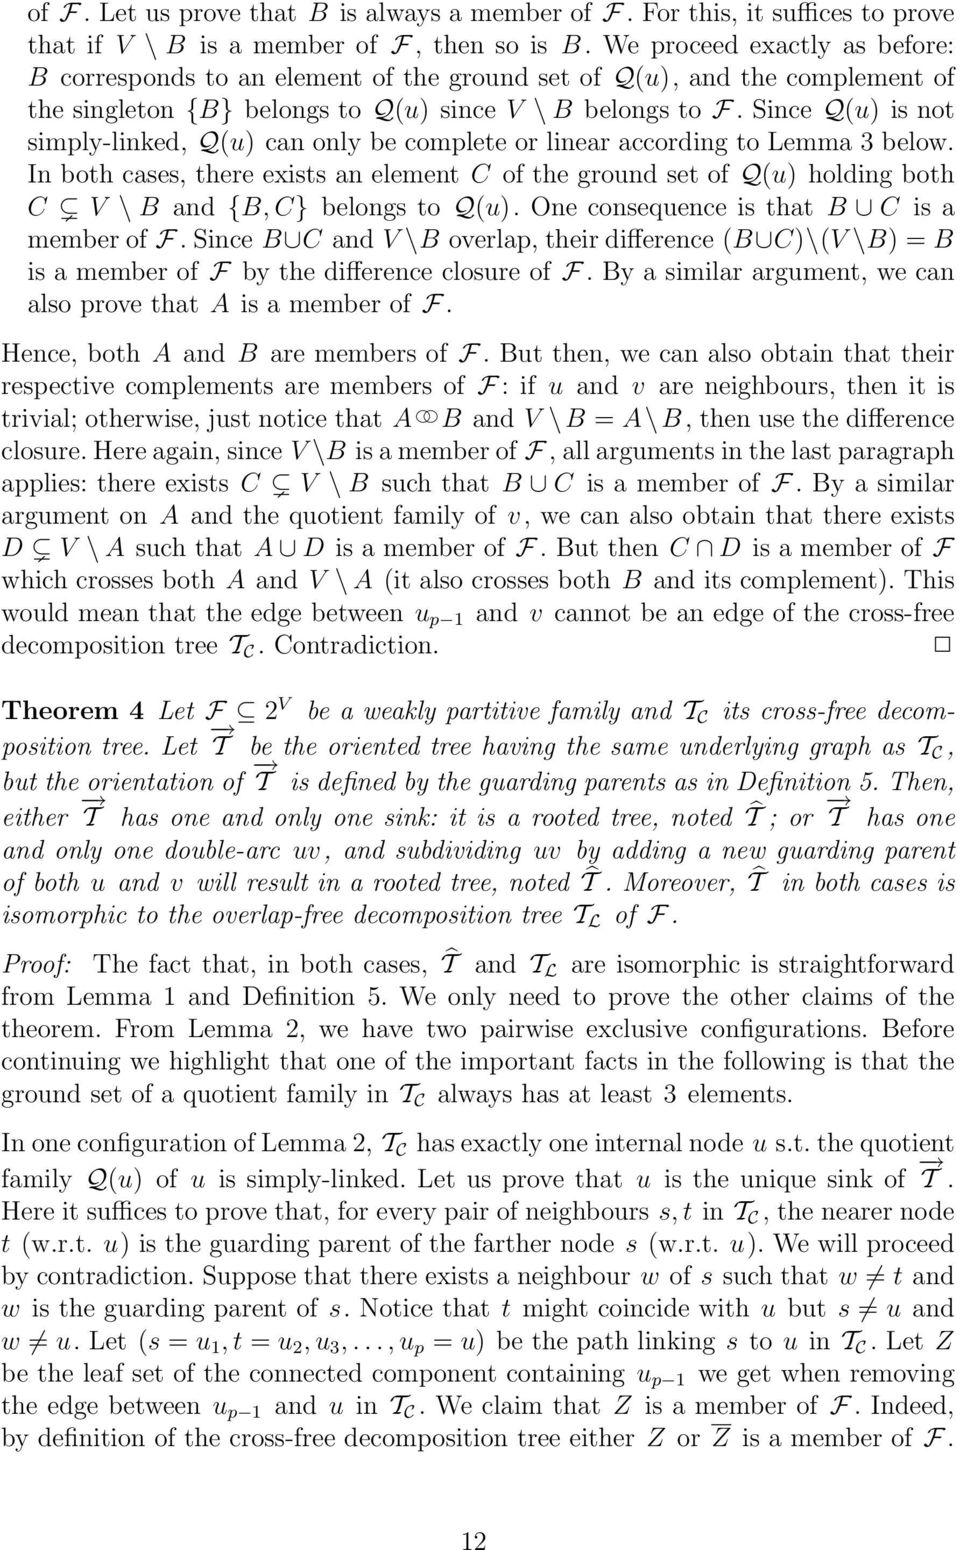 Since Q(u) is not simply-linked, Q(u) can only be complete or linear according to Lemma 3 below.